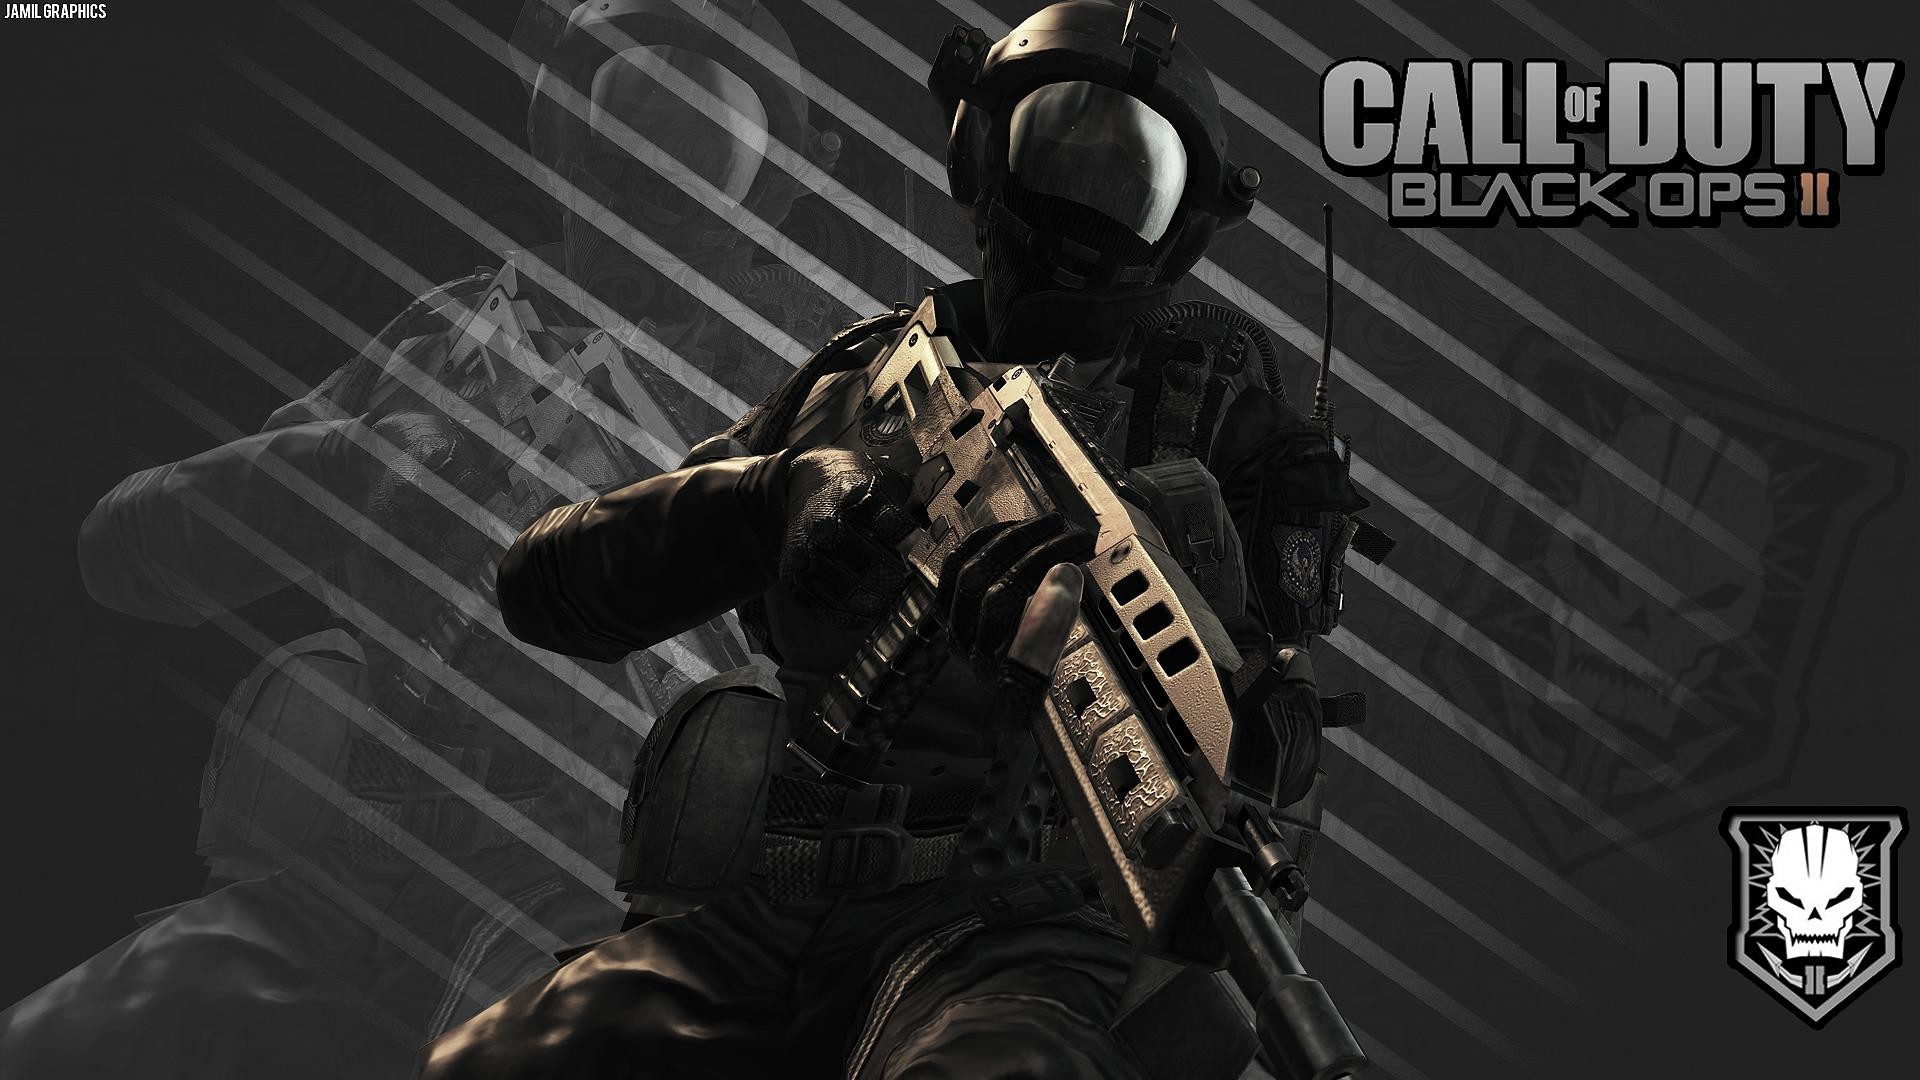 1920x1080 Call of Duty Black Ops 2 wallpaper 12